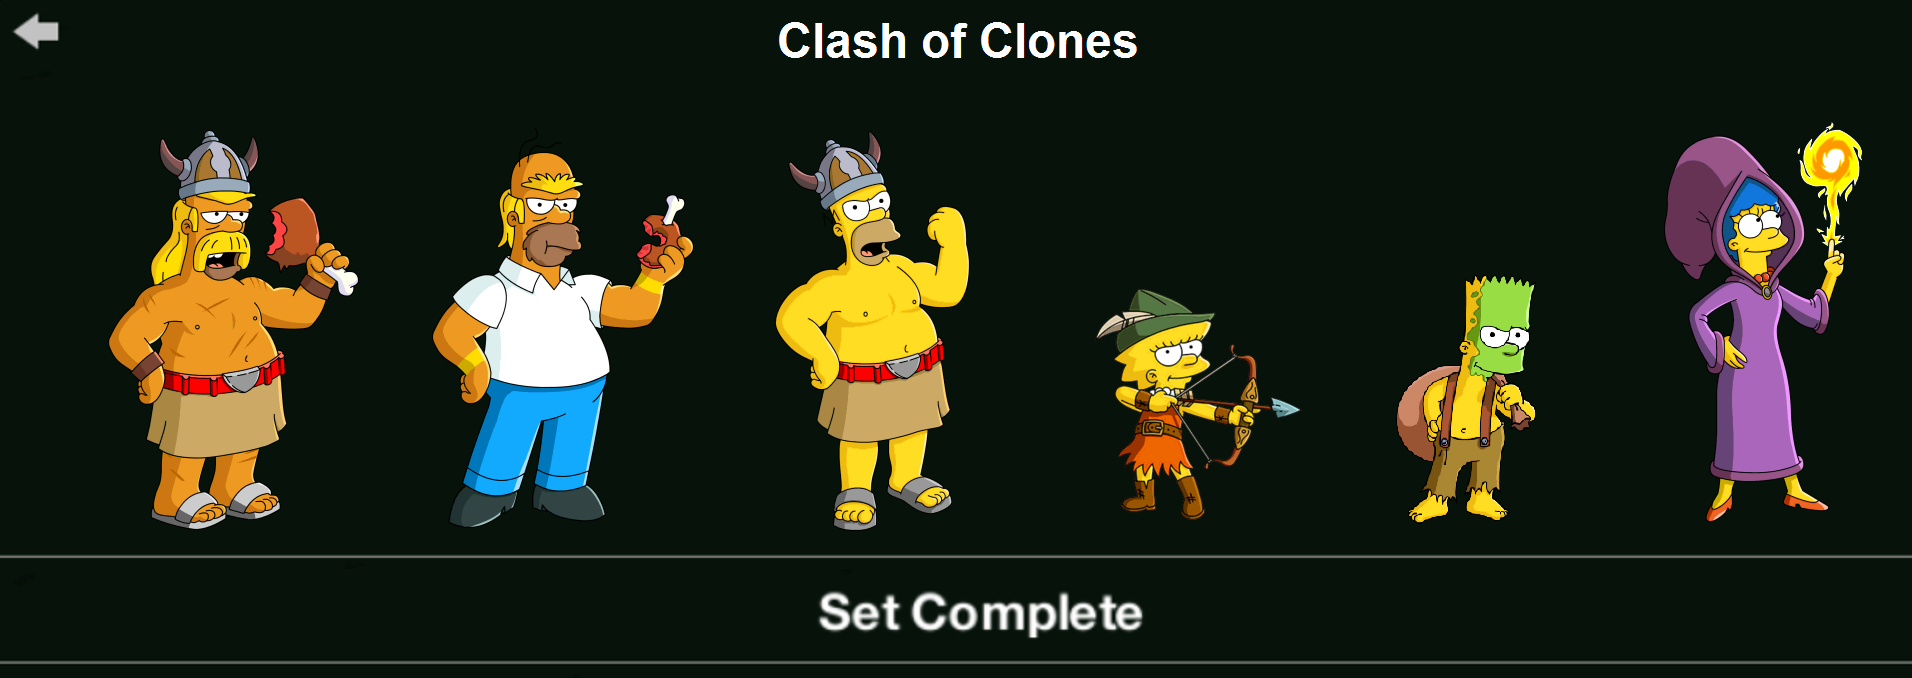 Clash of Clones collection.png